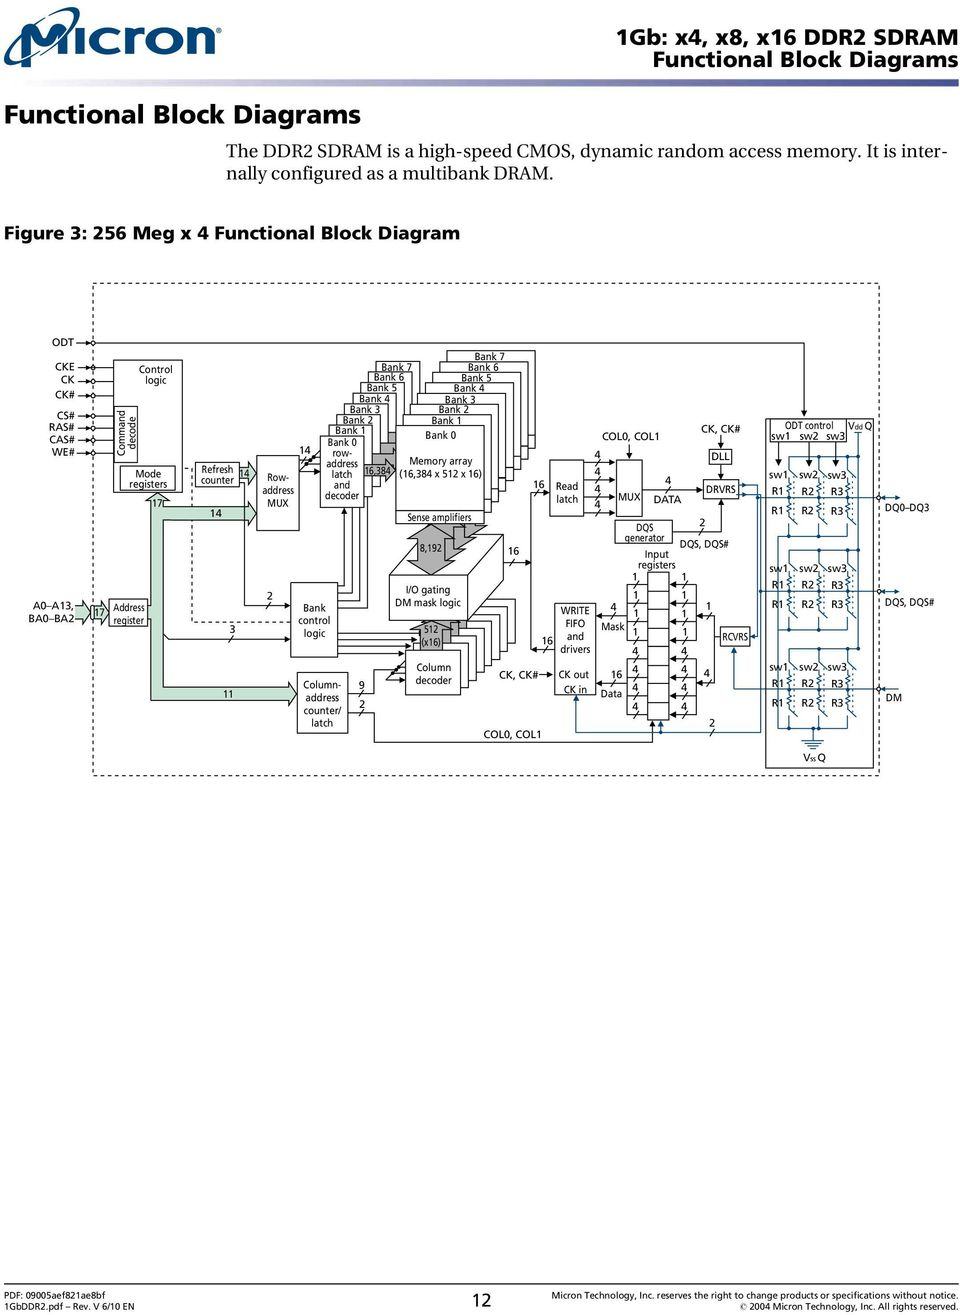 logic diagram 4 x 3 memory logic diagram of 4 bit comparator ddr2 sdram. mt47h256m4 32 meg x 4 x 8 banks mt47h128m8 16 ...